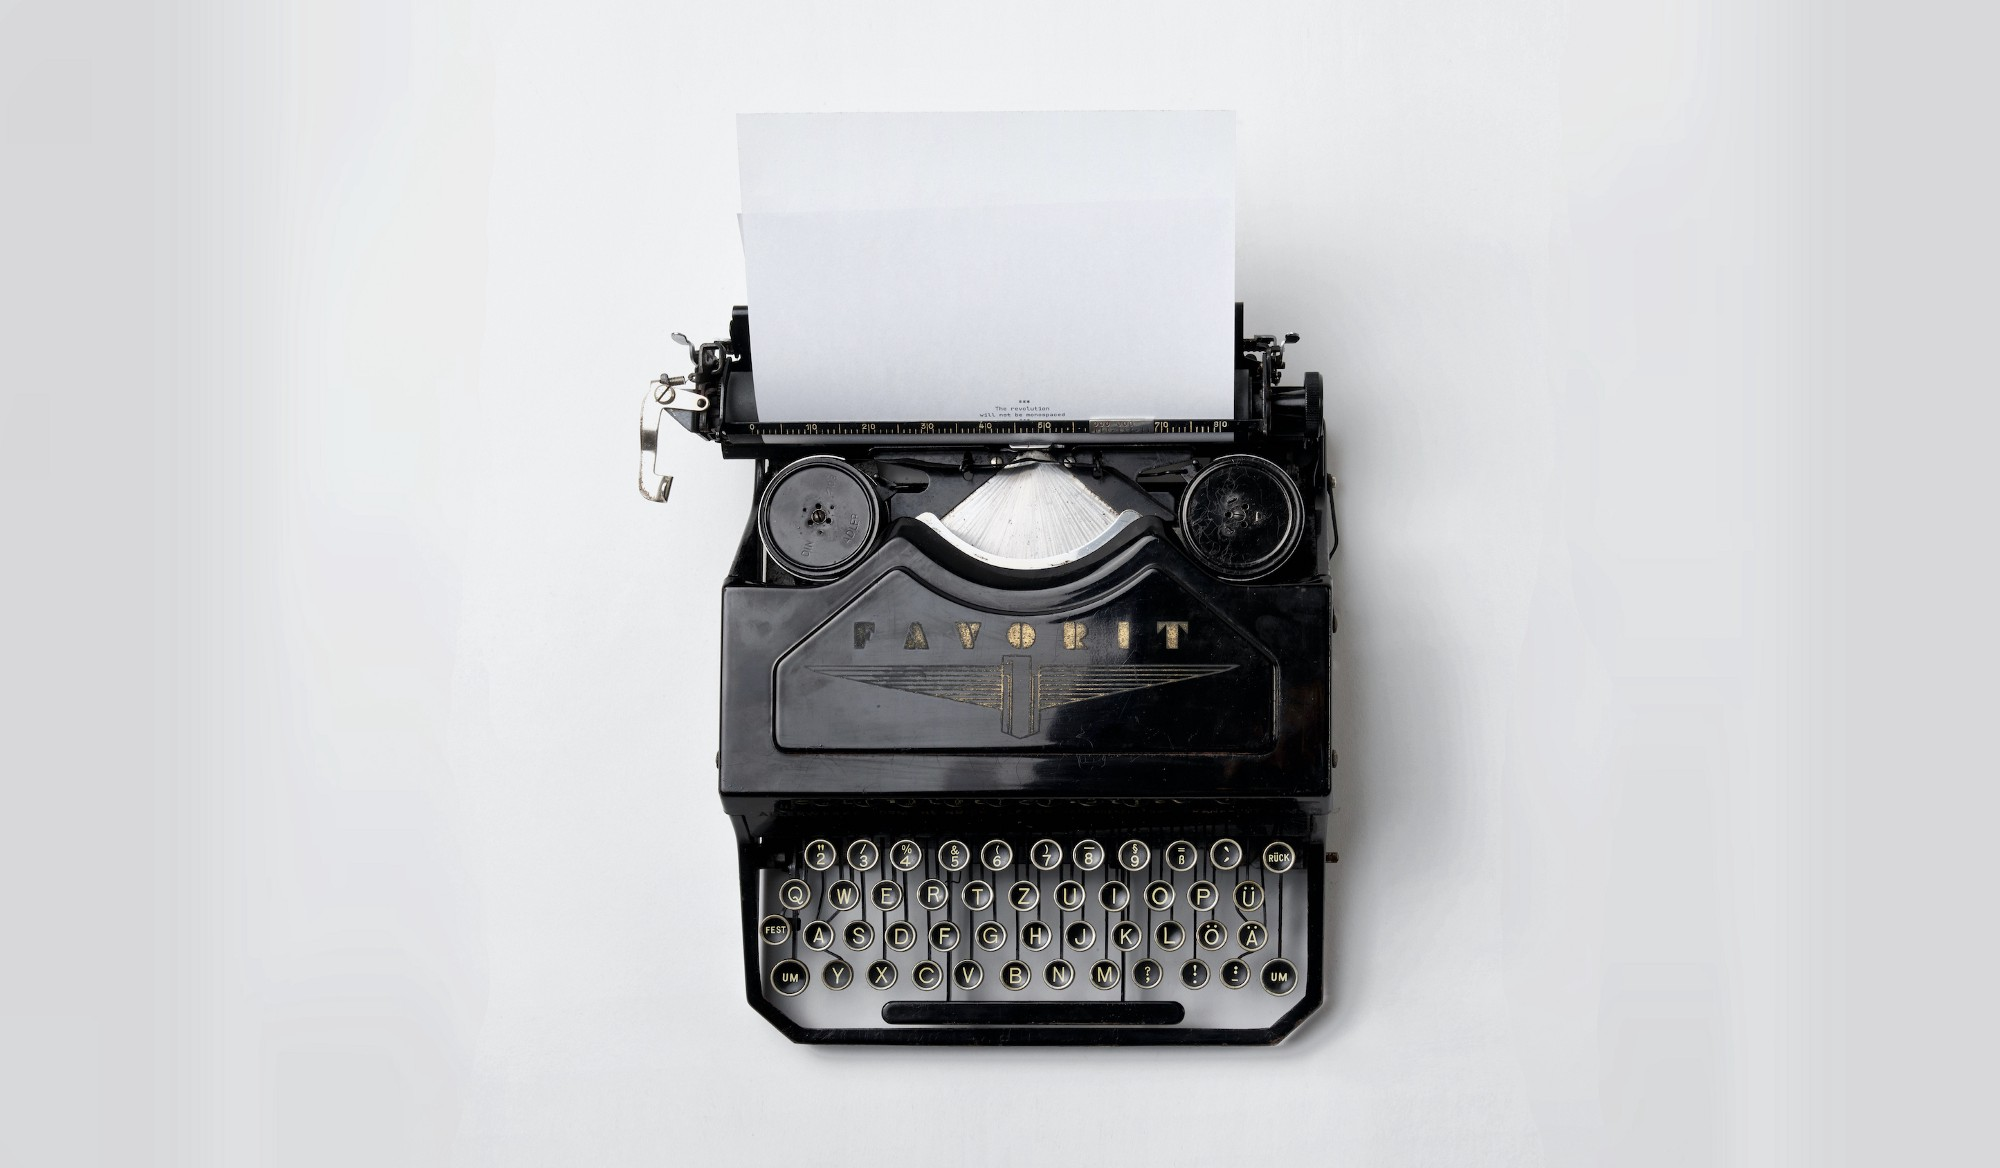 How to write like your life depends on it - There is nothing to writing. All you do is sit down at a typewriter and bleed.